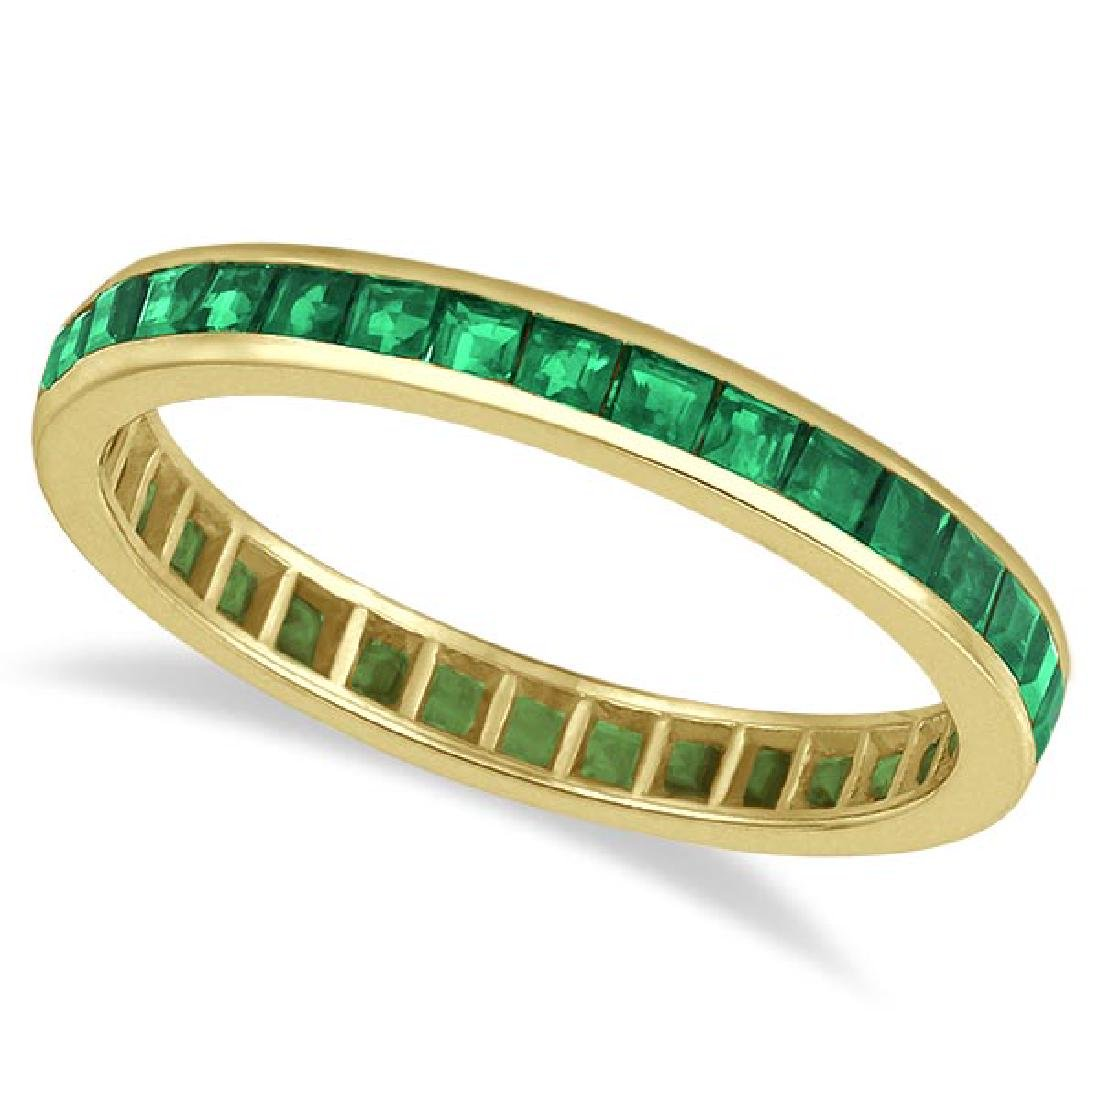 Princess-Cut Emerald Eternity Ring Band 14k Yellow Gold